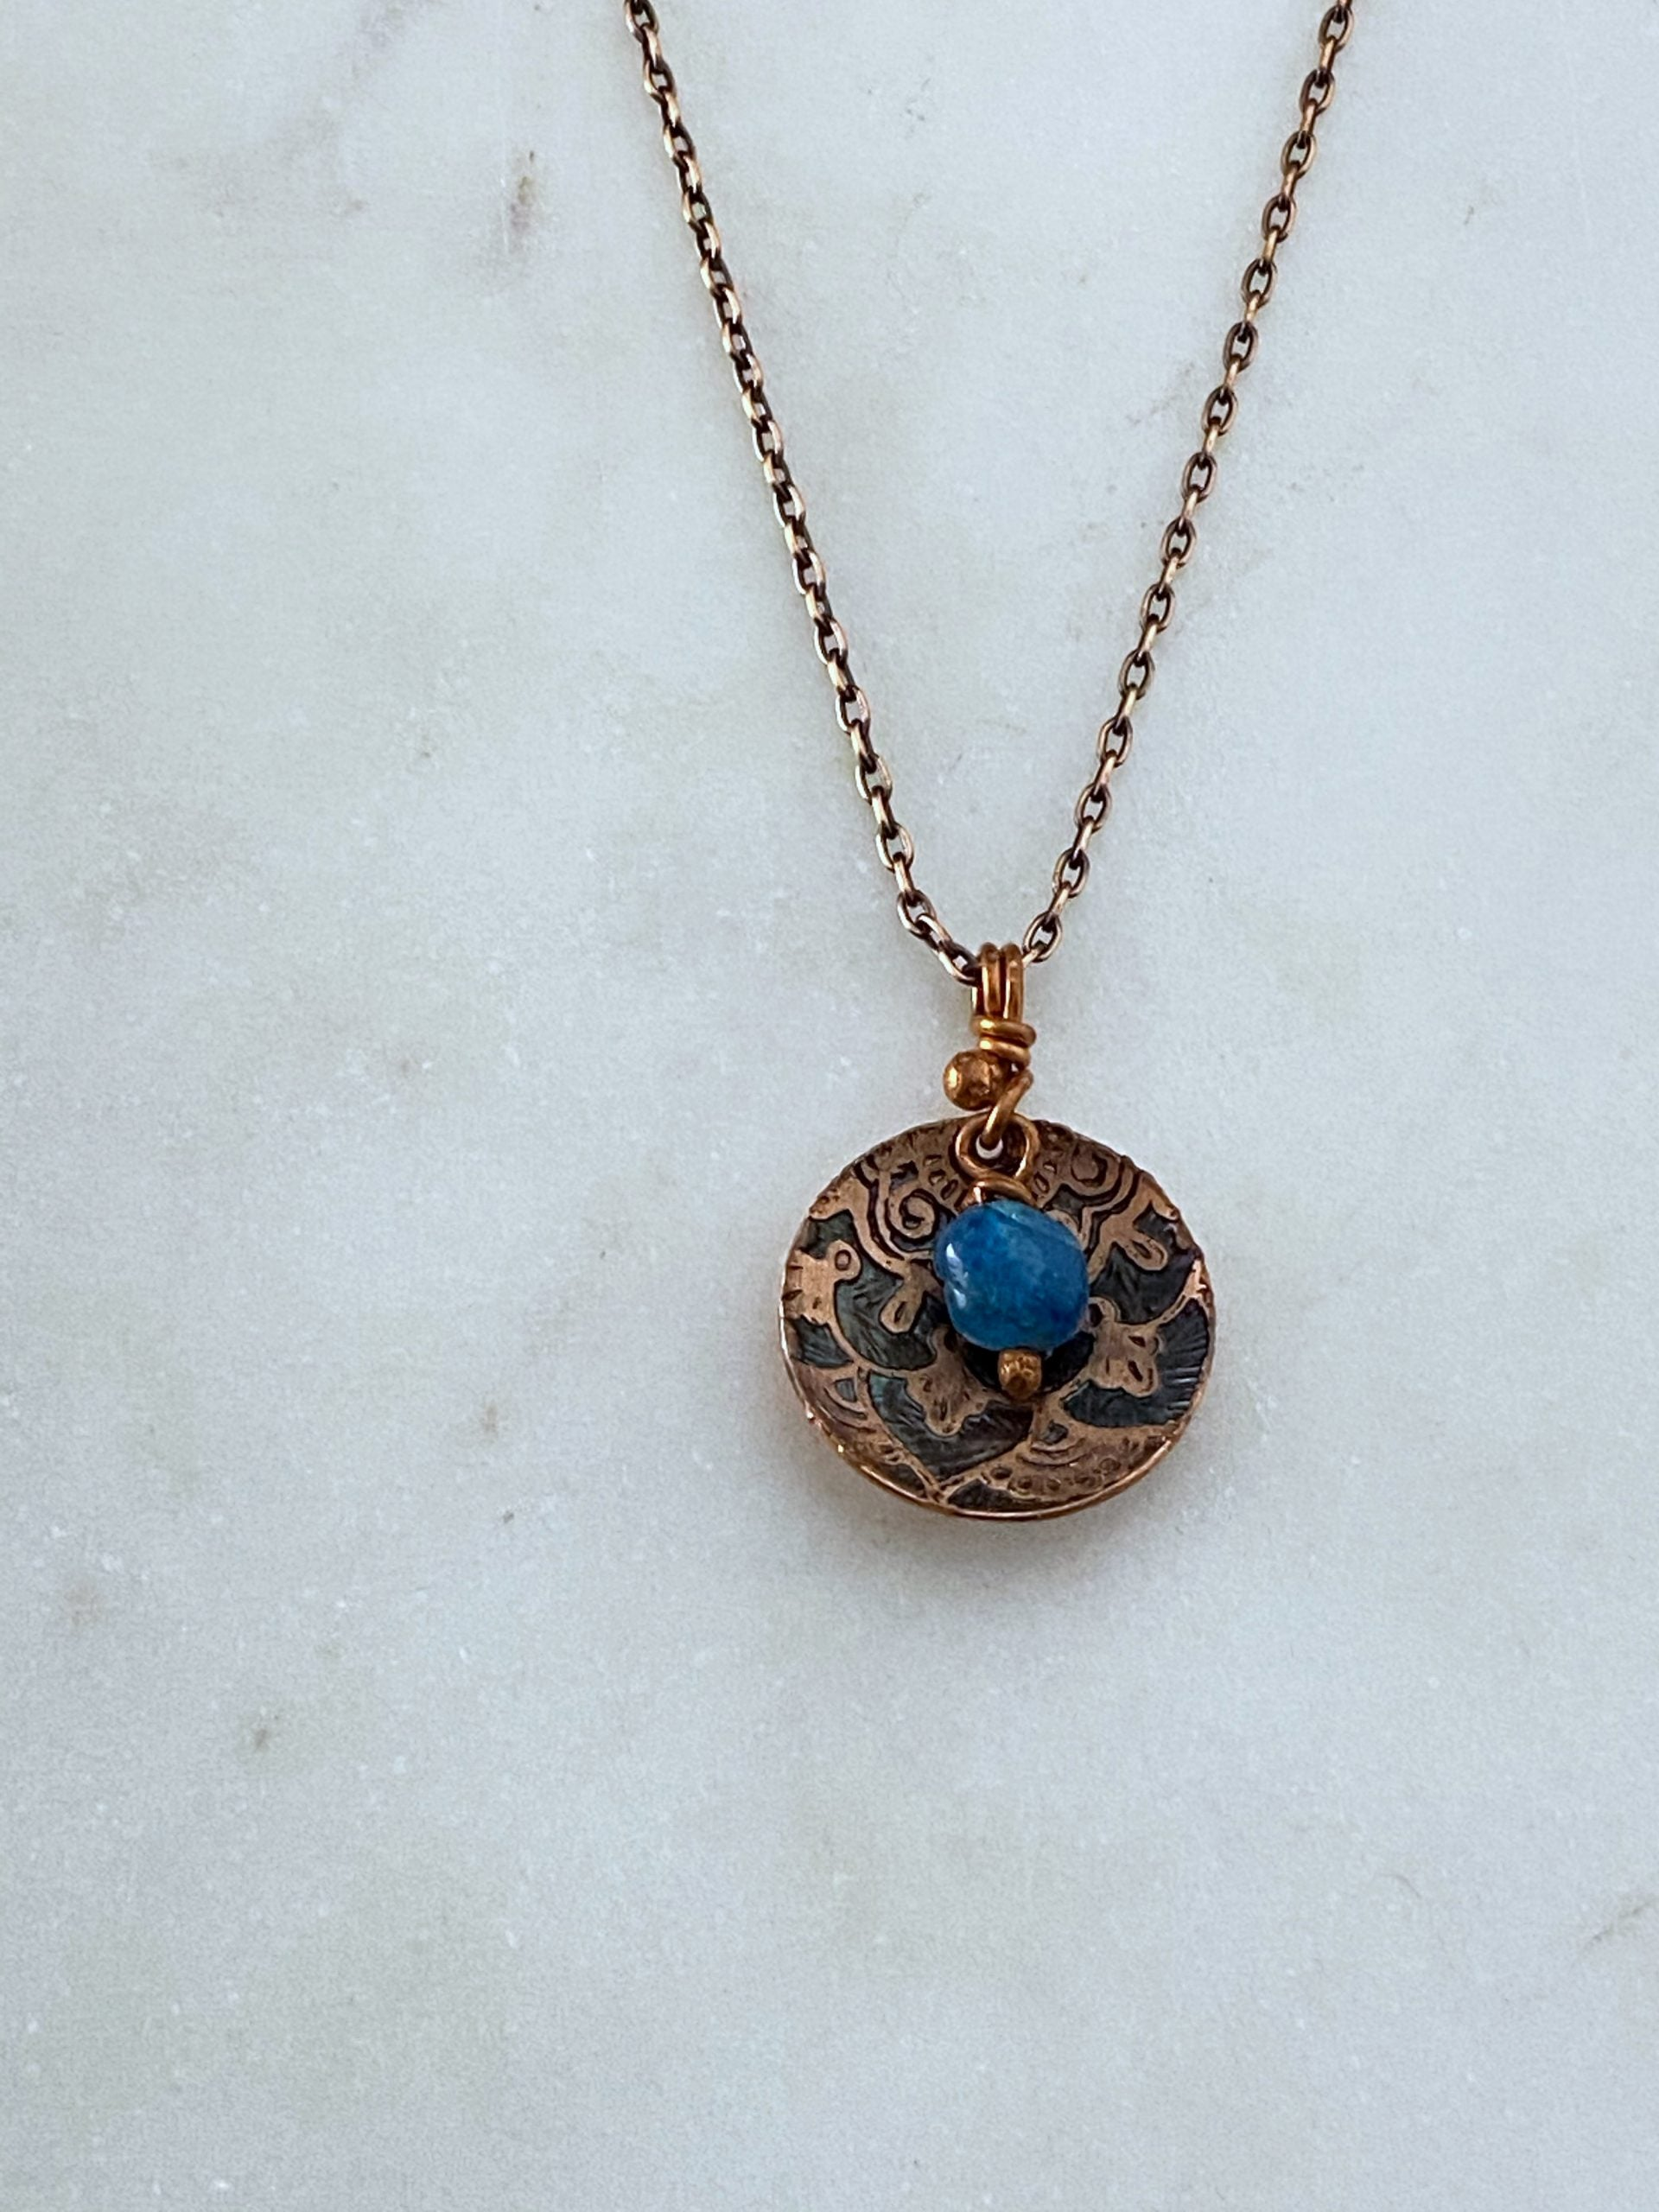 Acid etched copper cupped mandala dish necklace with apatite